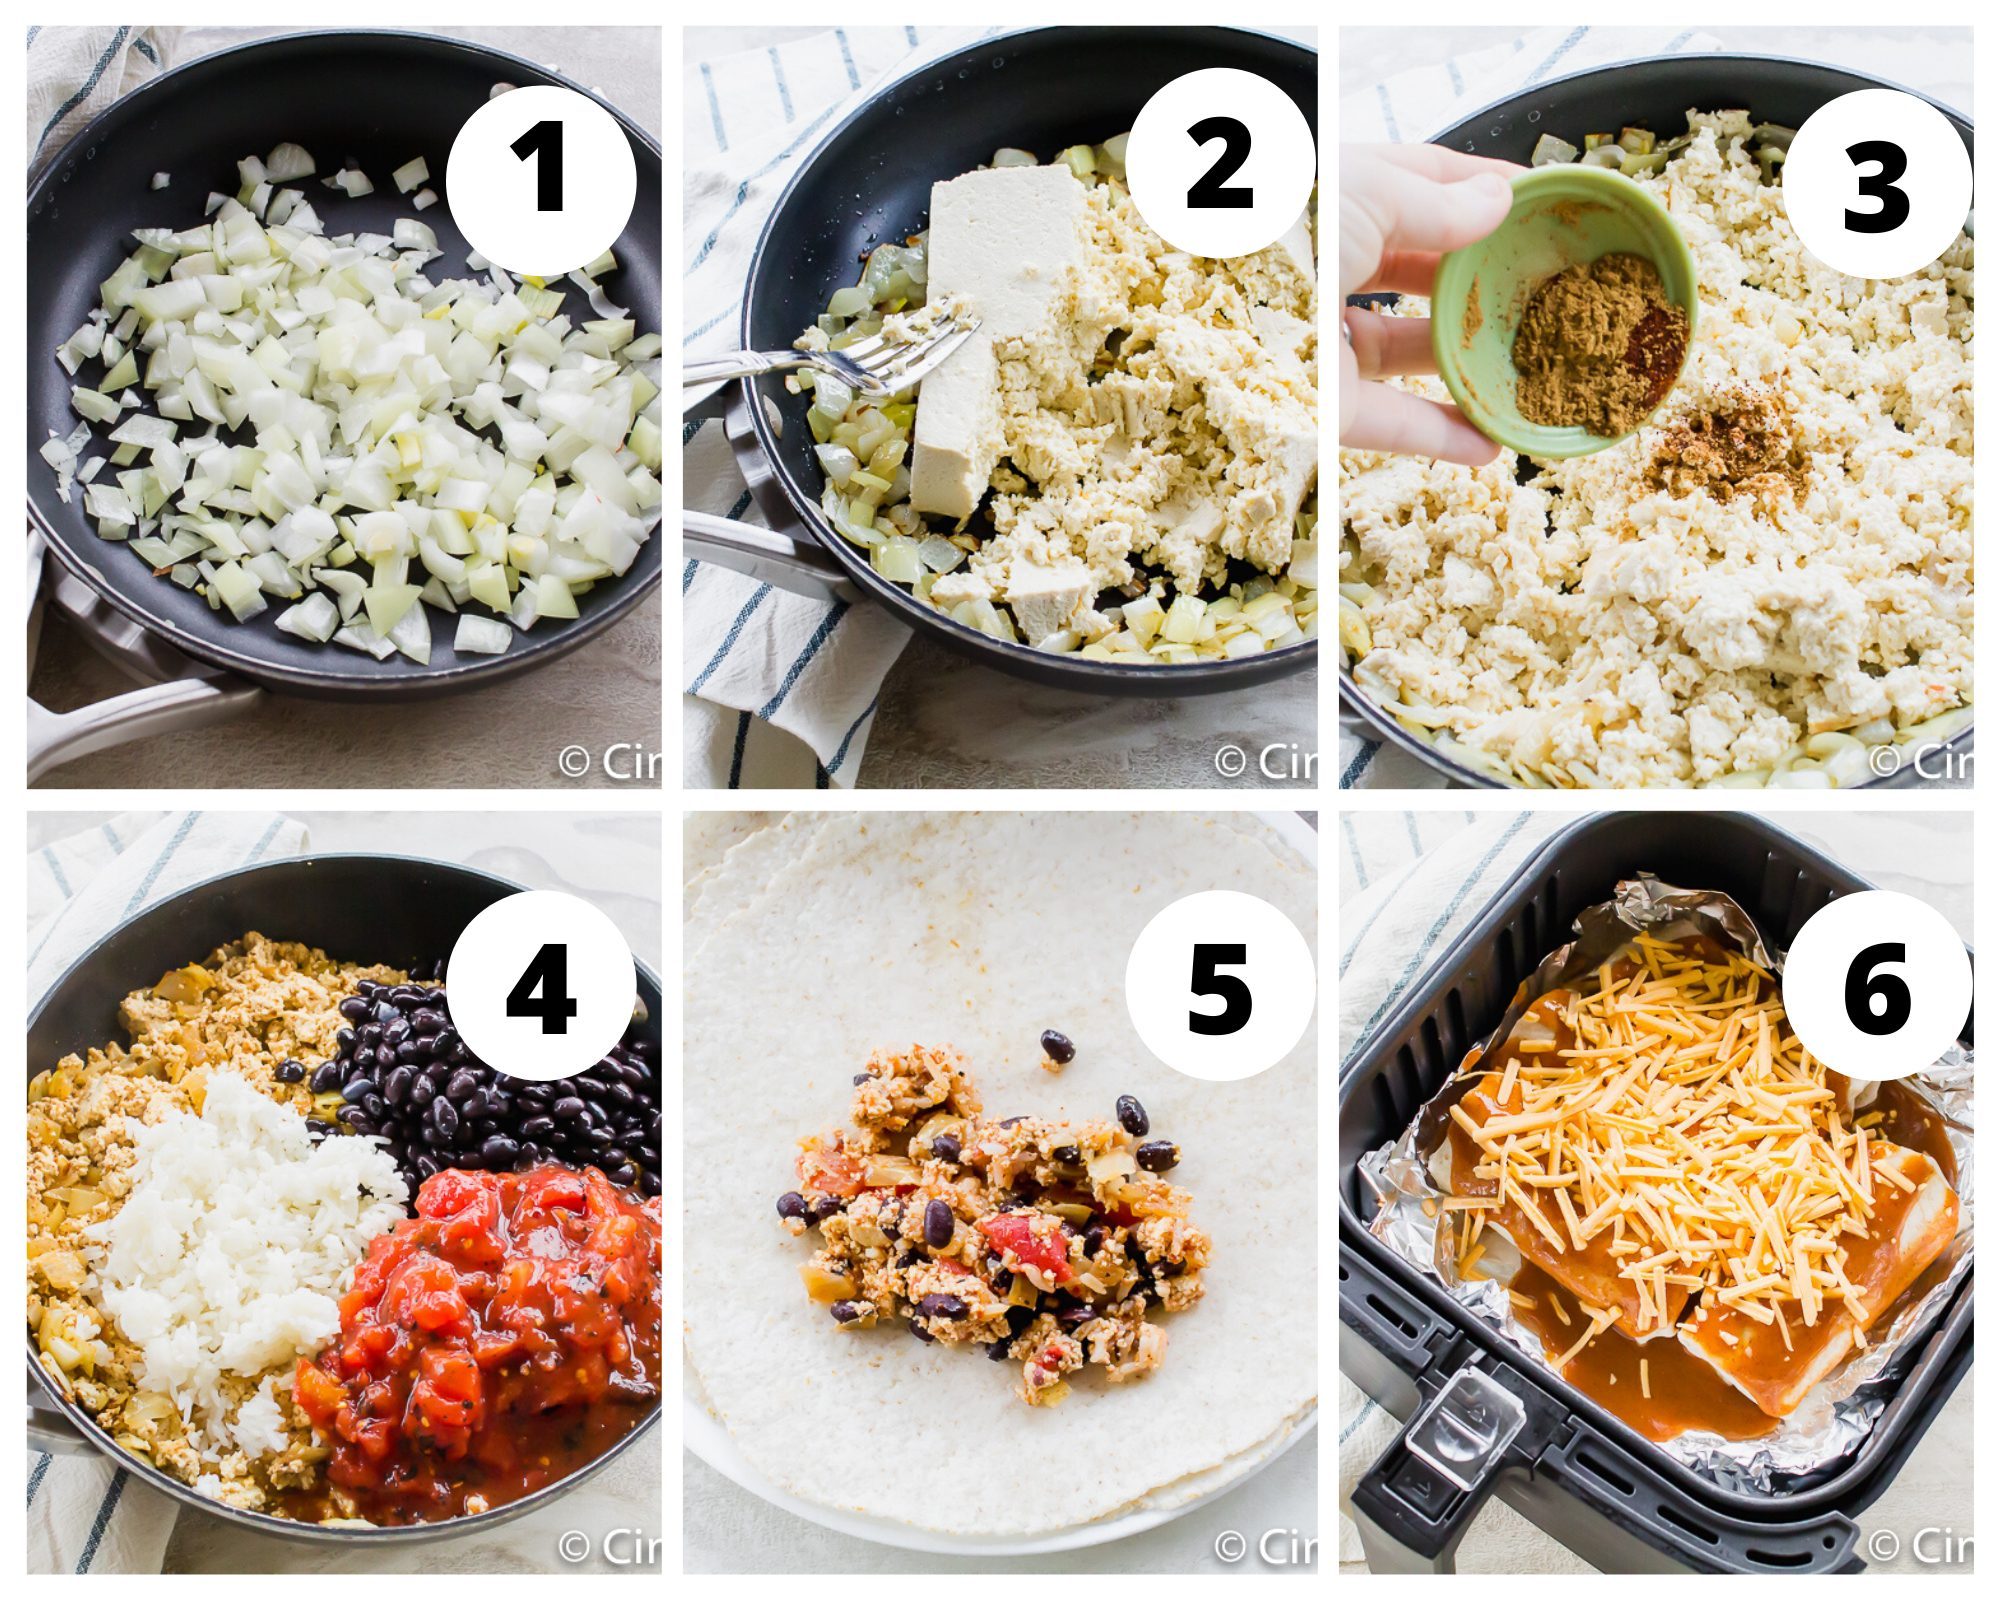 steps to make vegetarian enchiladas in an air fryer basket